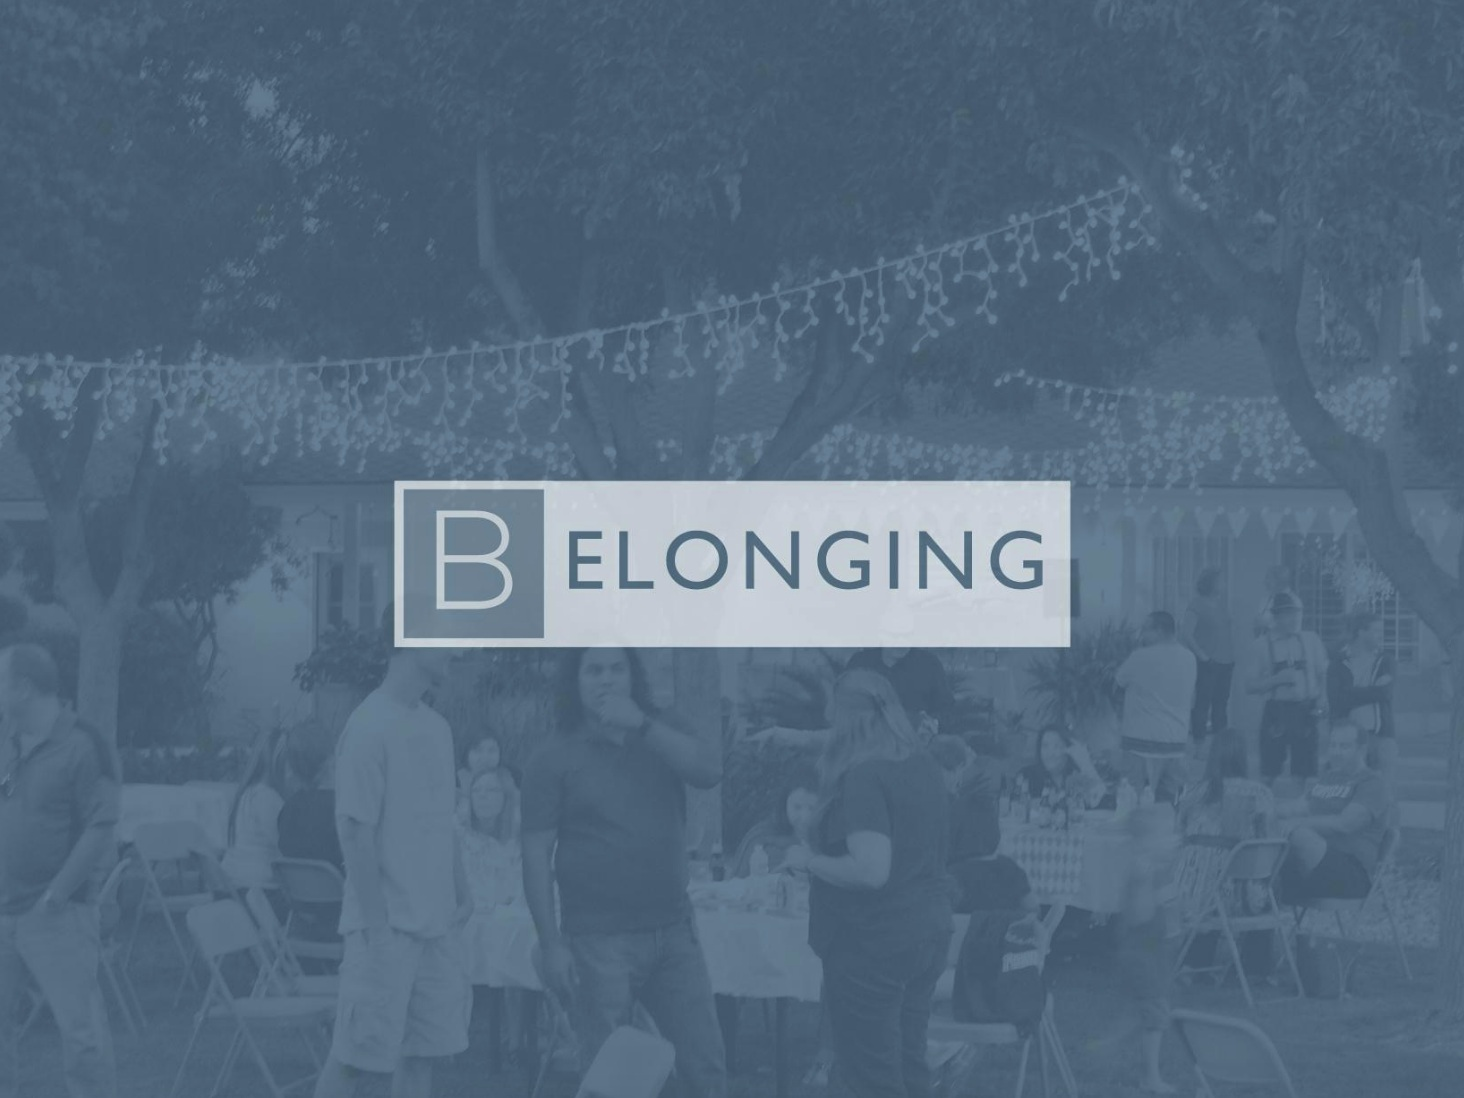 WHAT DOES IT MEAN TO belong? - Belonging at Sequoia means being accepted and loved no matter who you are or what you believe. Church isn't an exclusive club you can only join after you've checked off all the right boxes, but a community where you can journey toward Christ; and every journey starts somewhere. For many, belonging happens way before believing. We invite you to join us for one of our upcoming events.